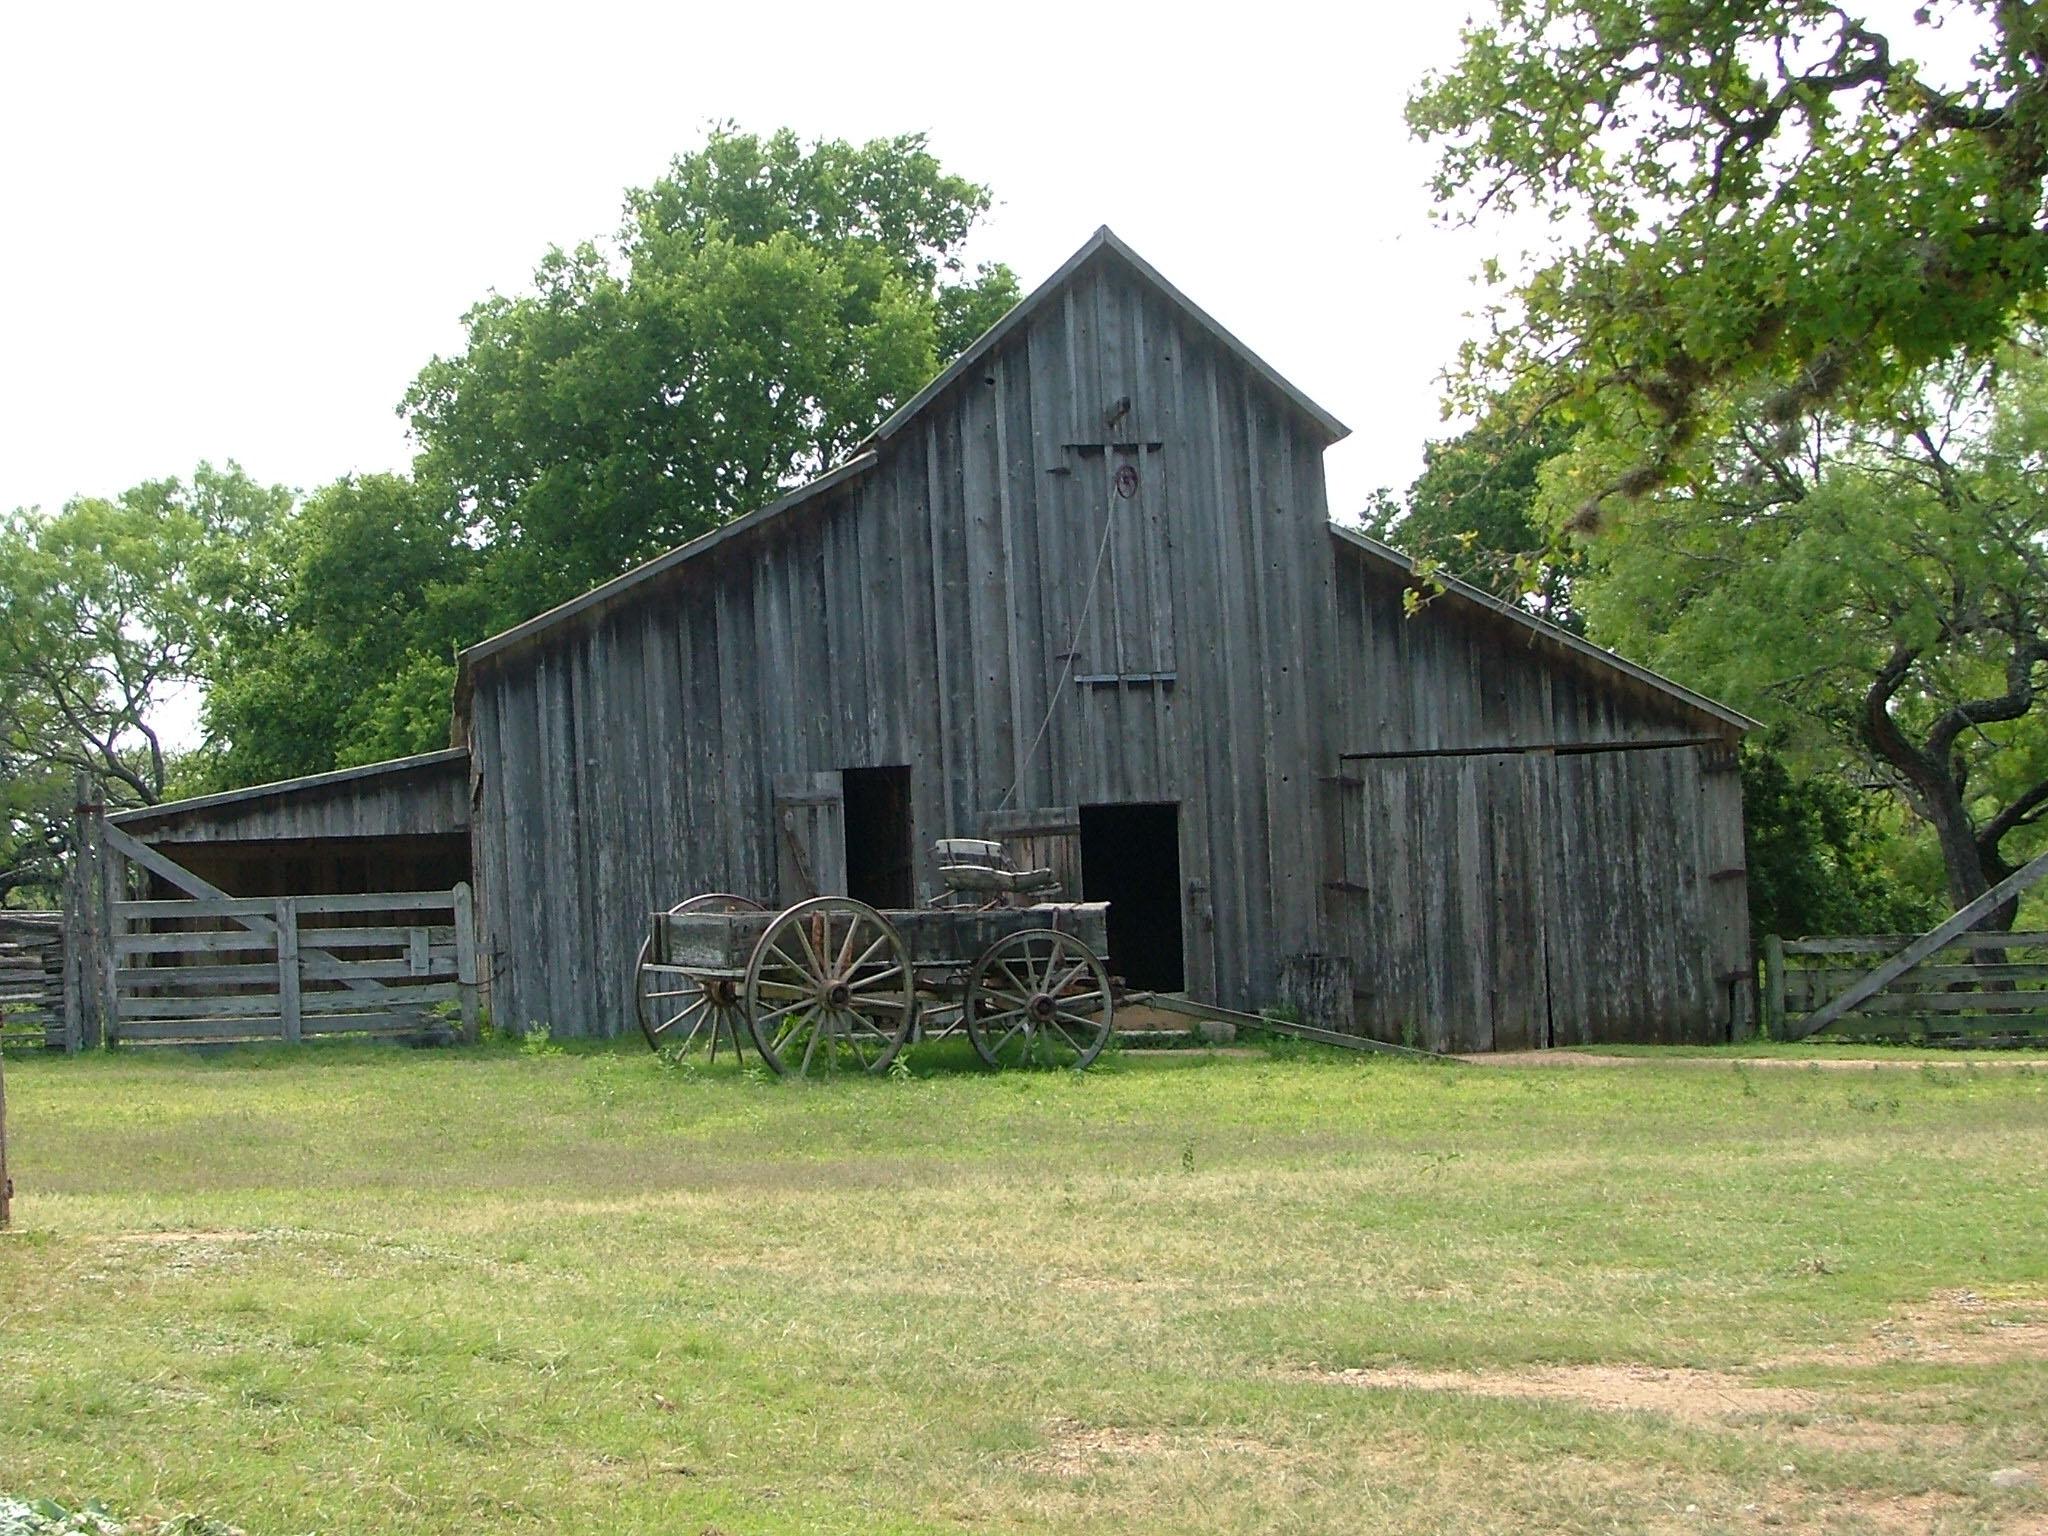 Hill country barn and wagon rustic images foundmyself for Old style barn plans